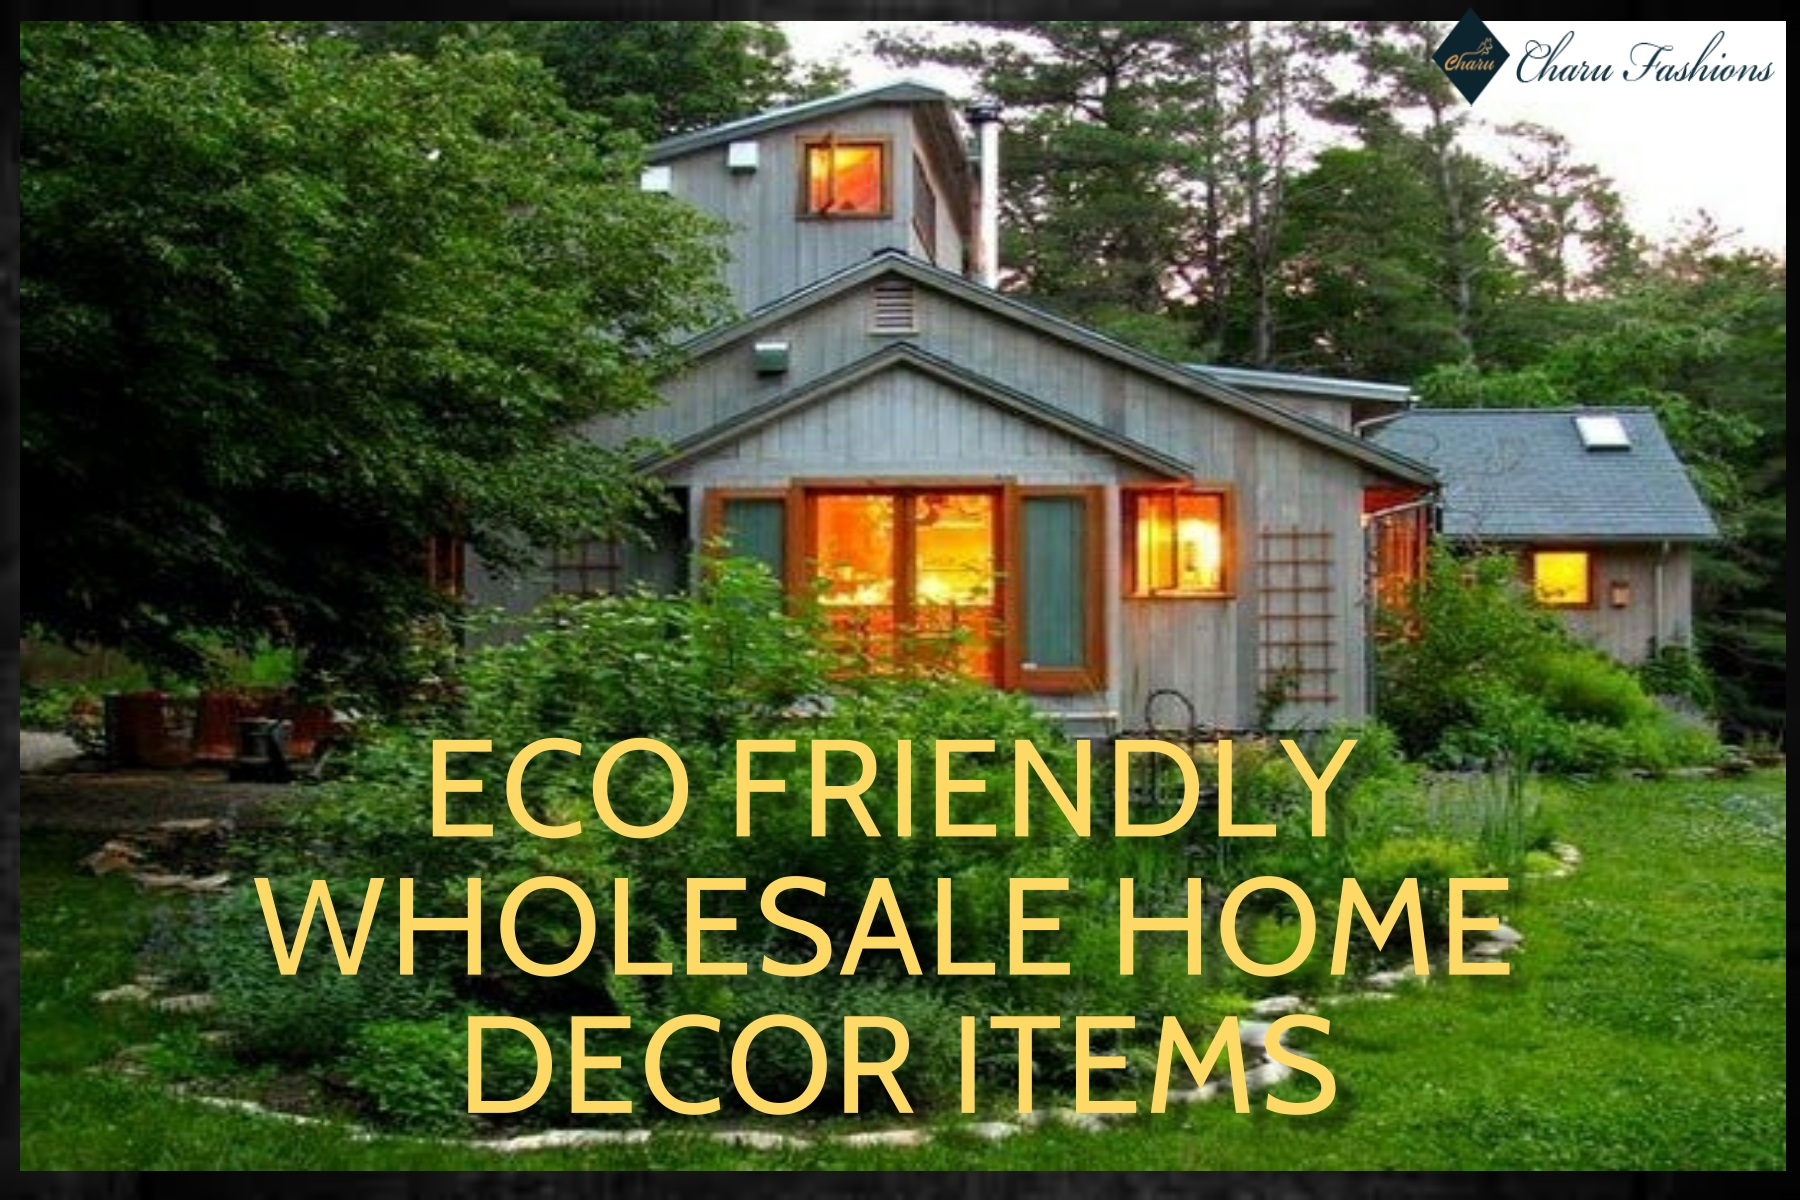 Eco friendly wholesale home decor ideas charu fashions for Wholesale home decor